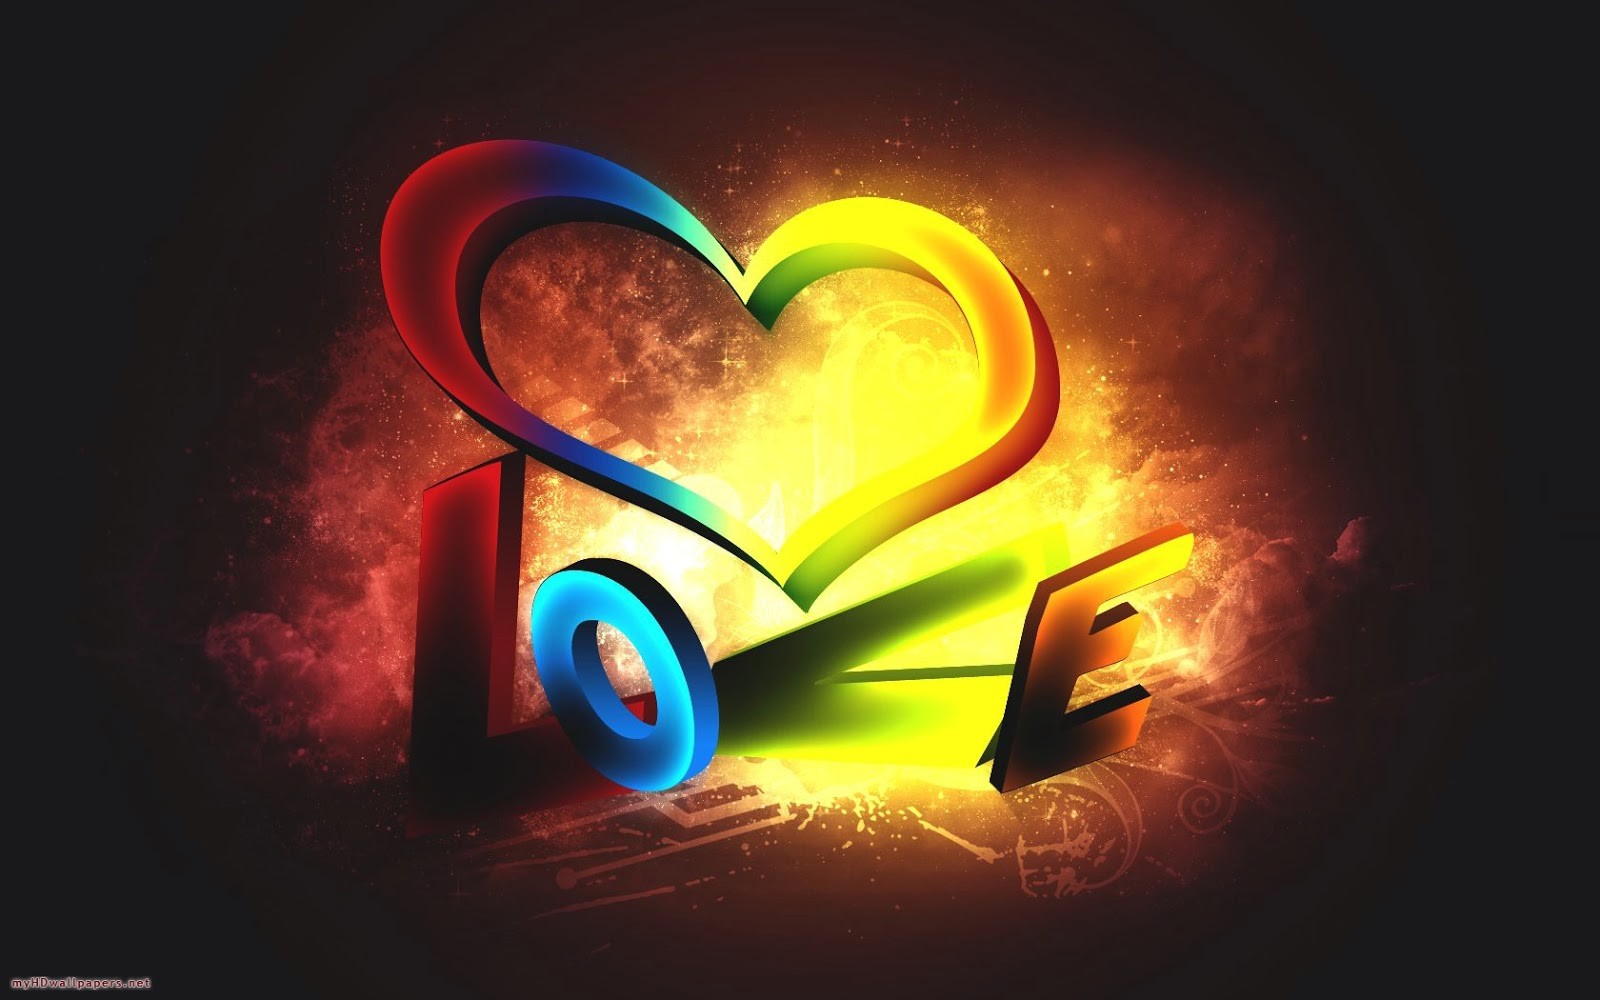 Unique And Wonderful Wallpapers Of Love Free Download For Android | Free Download Wallpaper ...